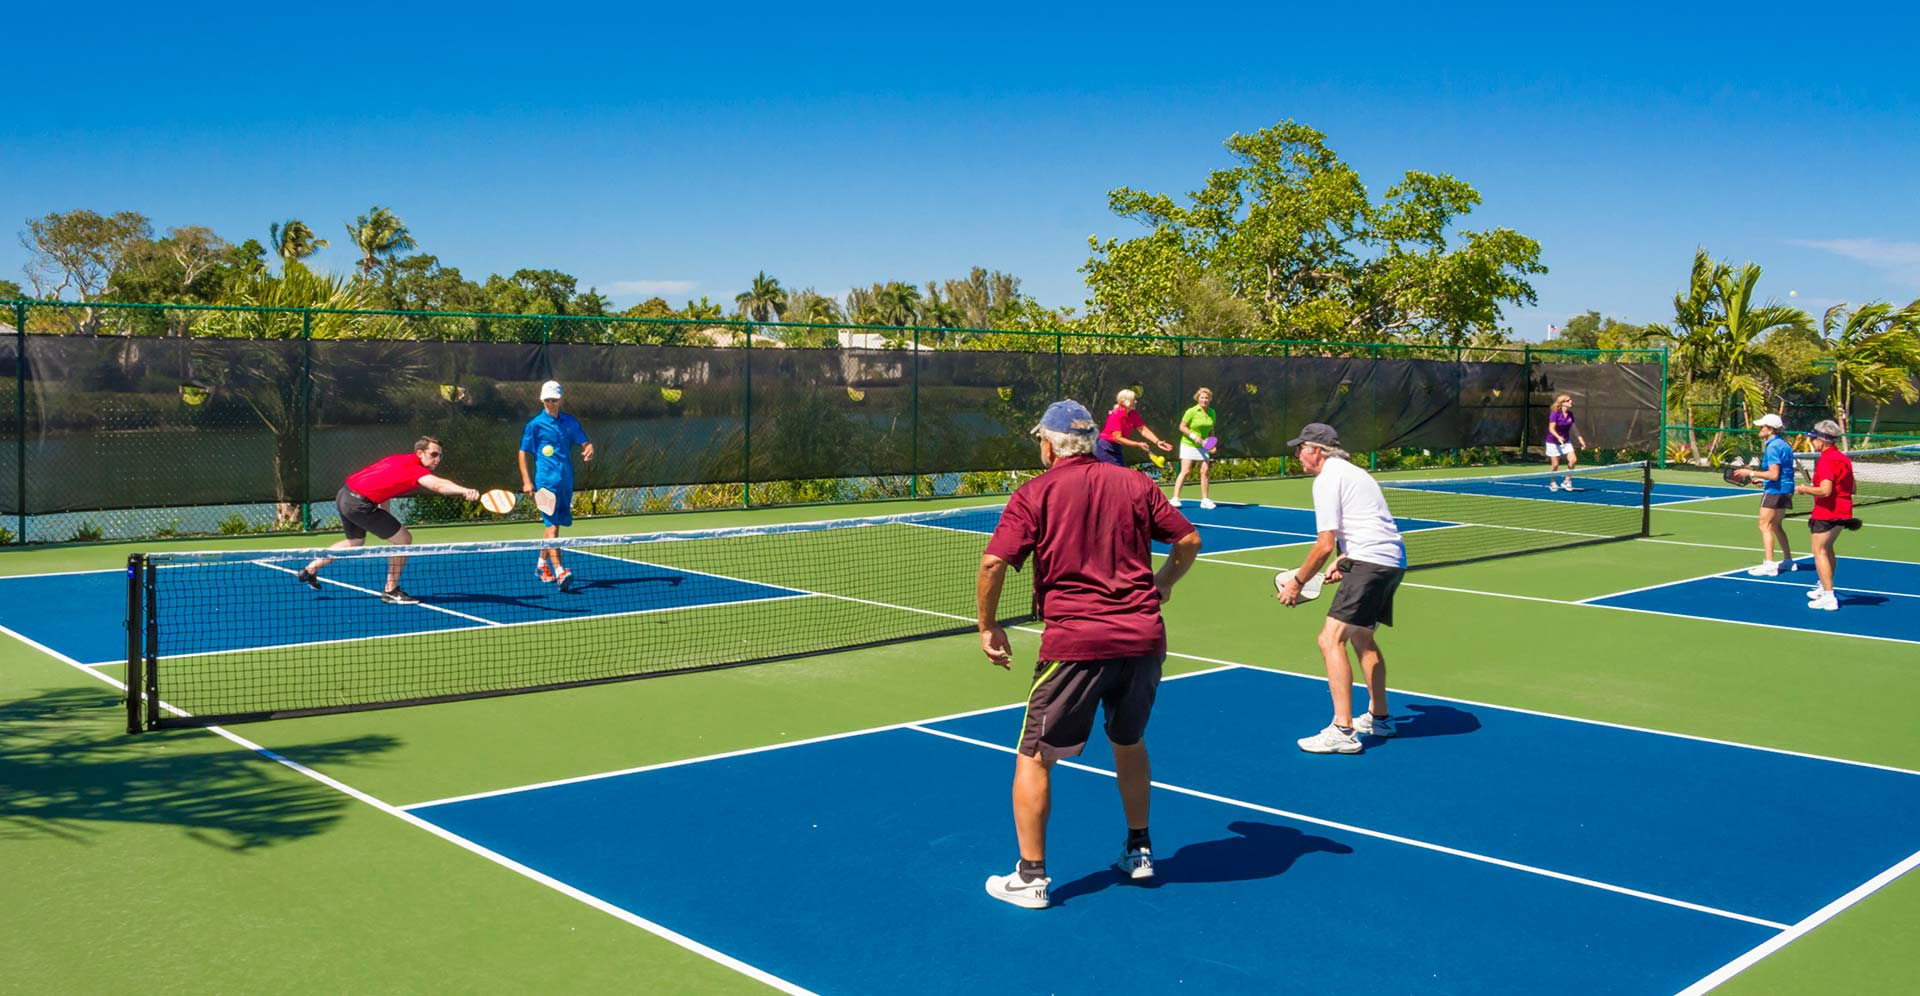 Sundial Resort - Pickleball Courts are Open